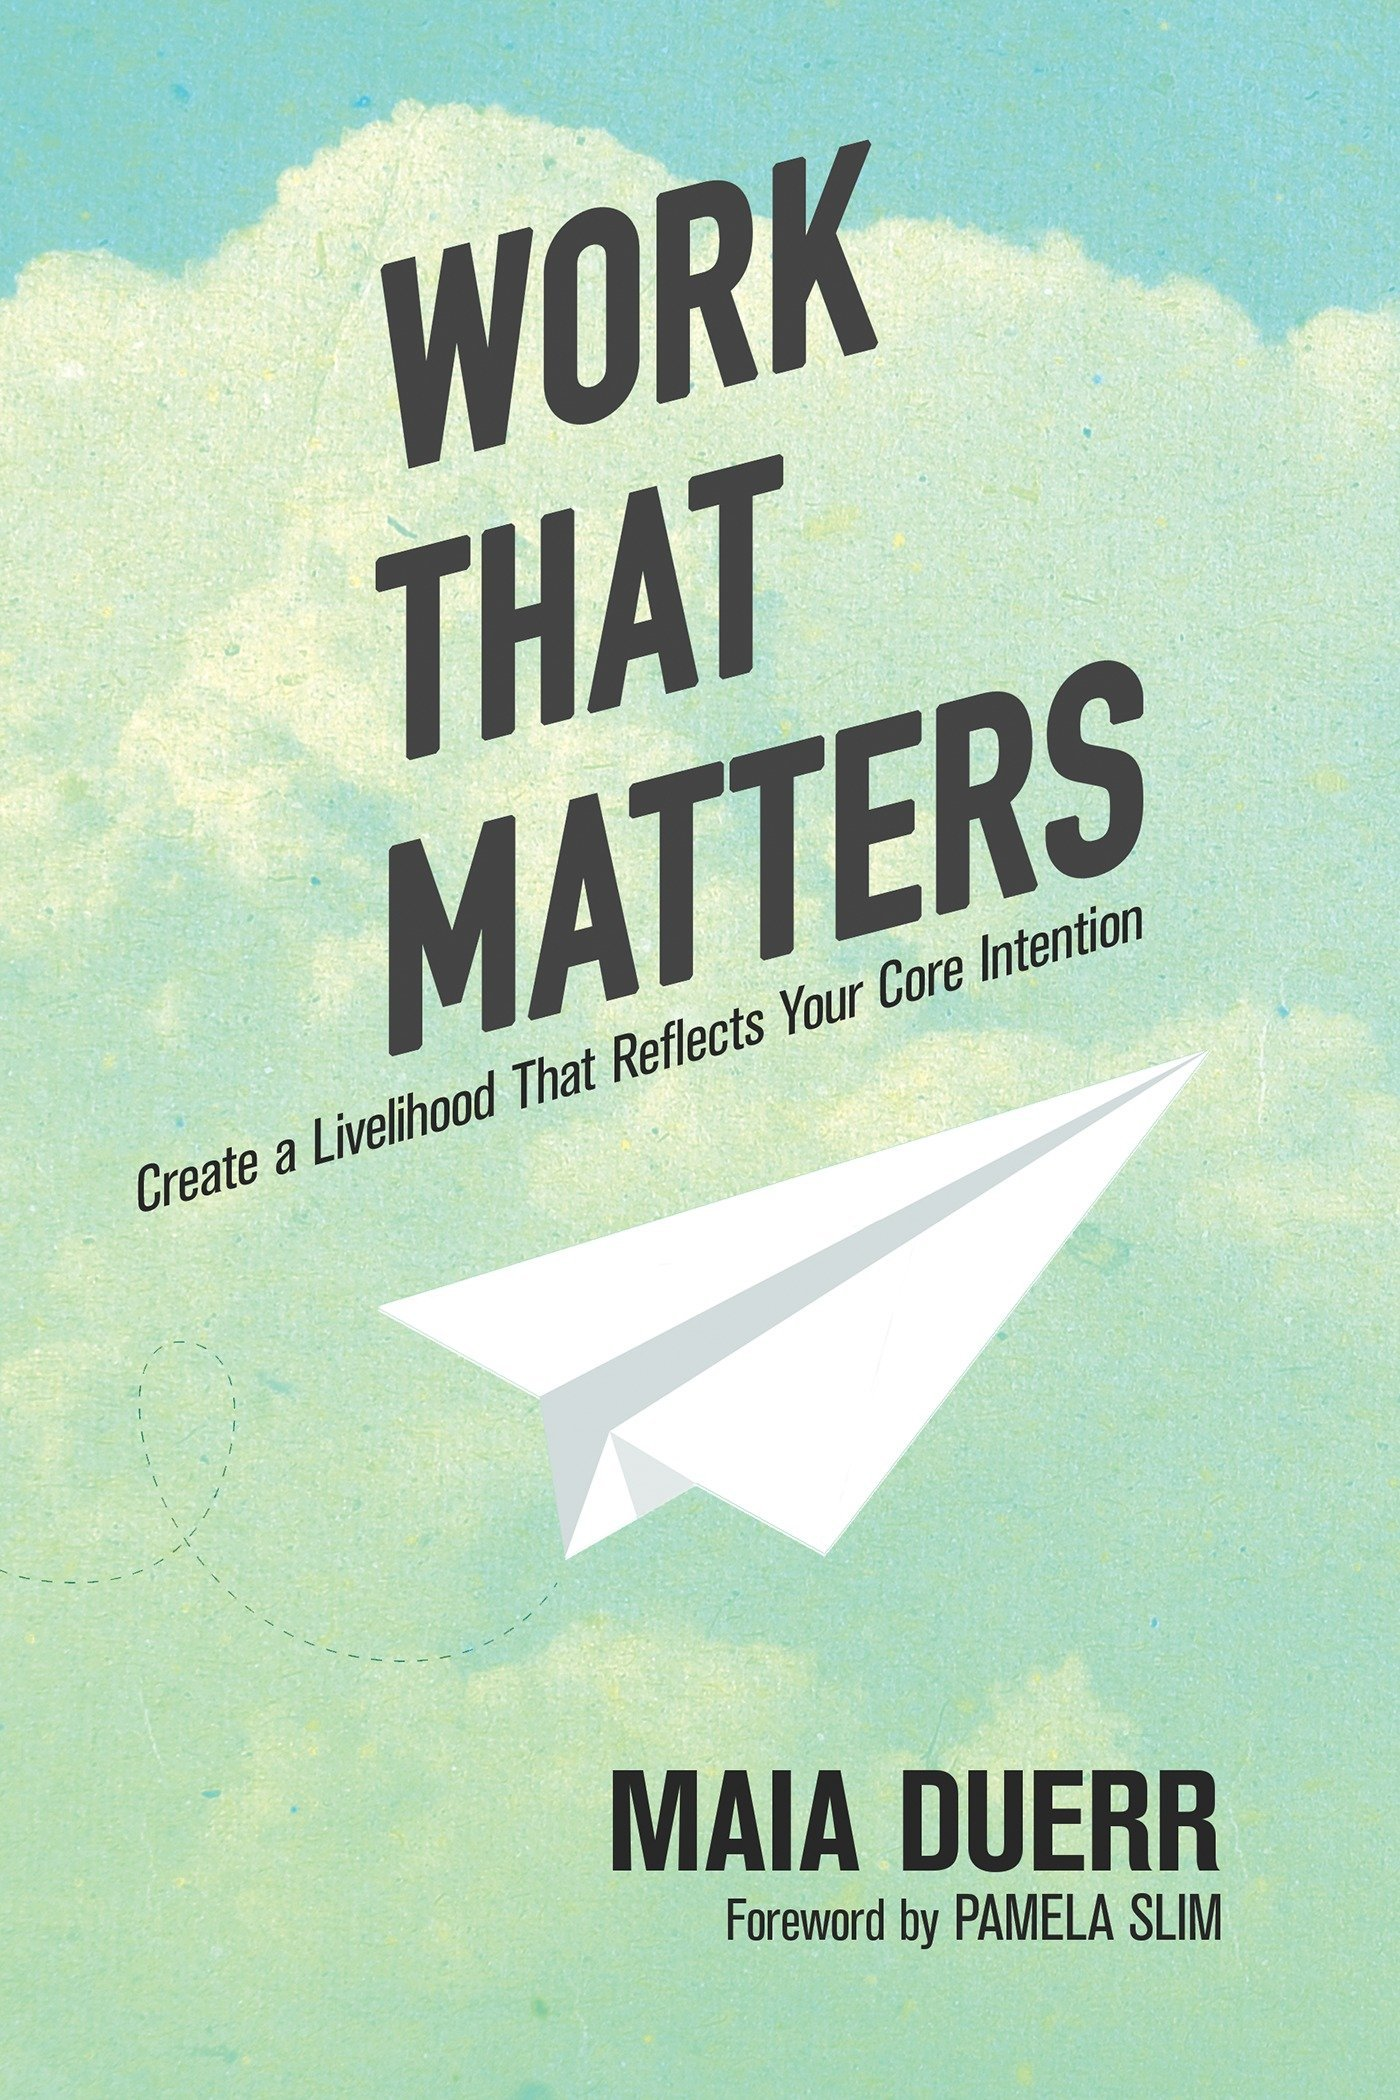 Work That Matters: Create a Livelihood That Reflects Your Core Intention:  Maia Duerr: 9781941529683: Amazon.com: Books